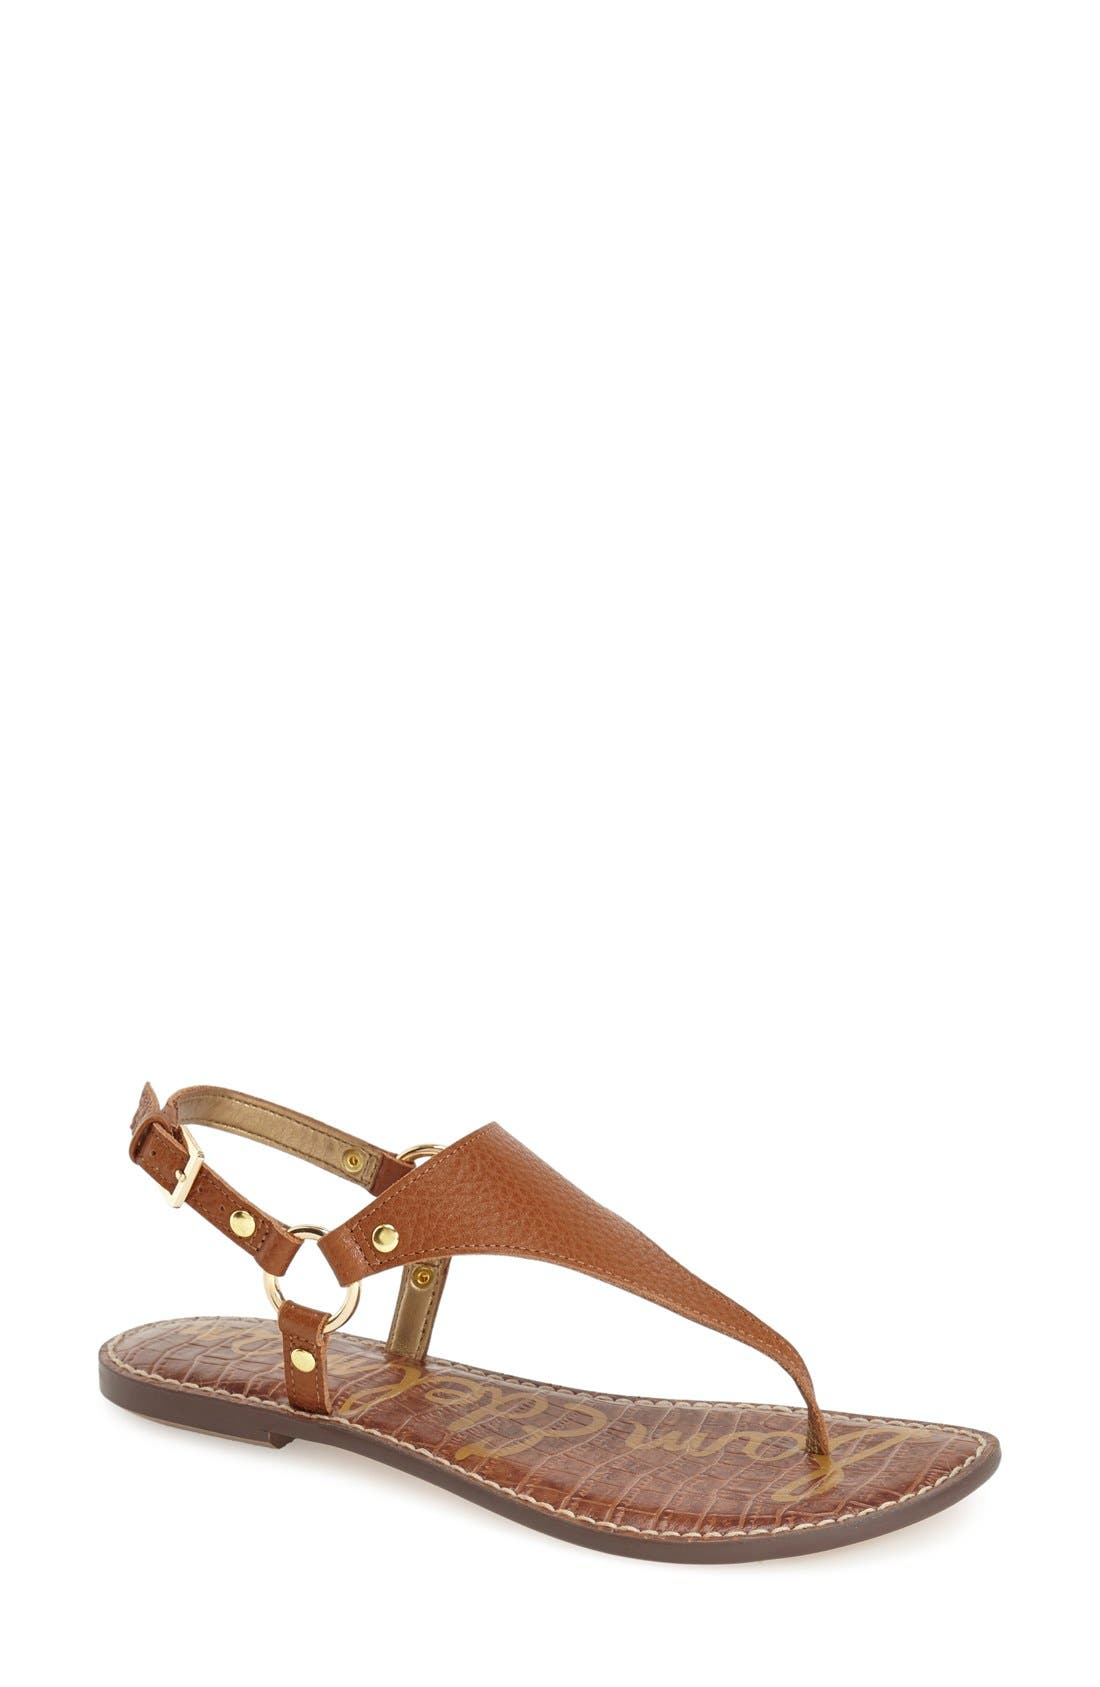 Greta Sandal, Main, color, SOFT SADDLE LEATHER